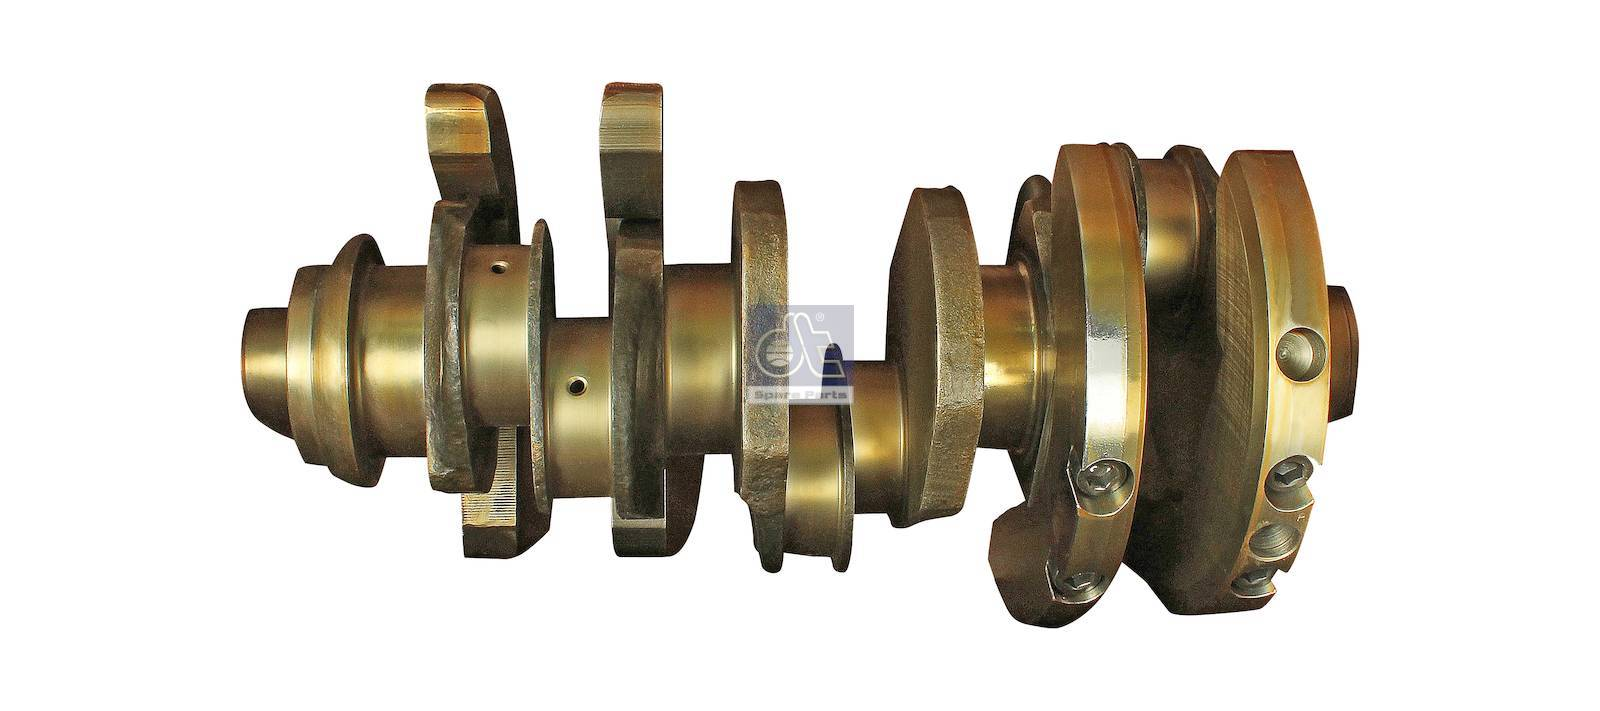 Crankshaft, without bearings